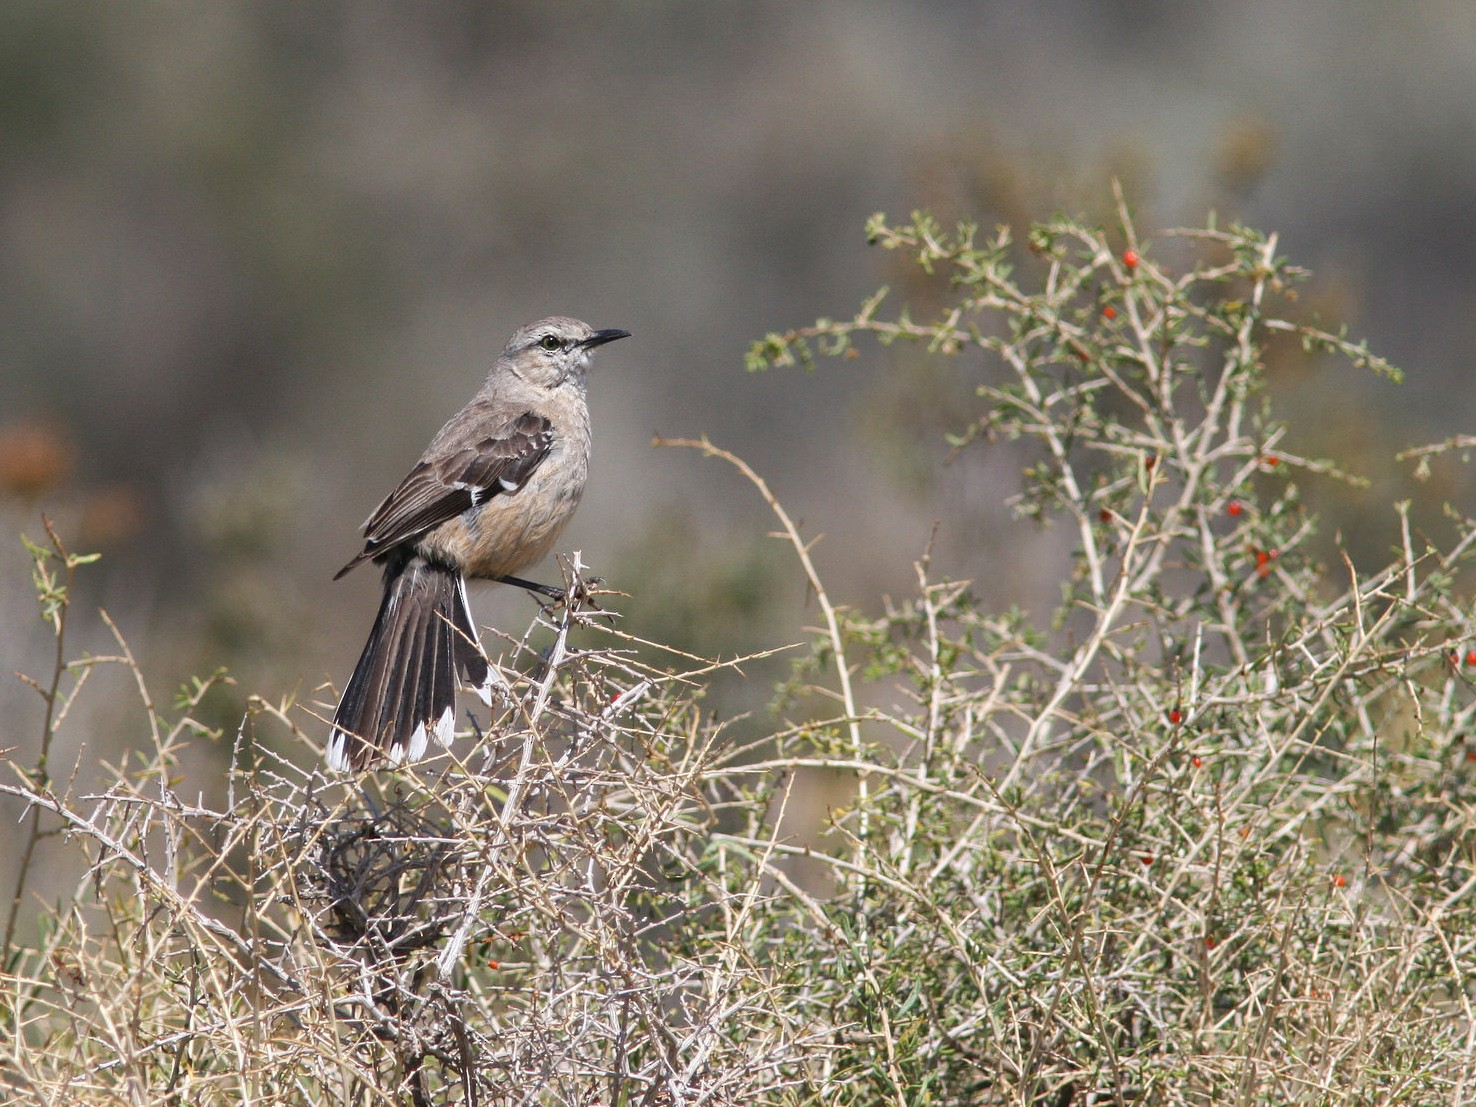 Patagonian Mockingbird - Markus Deutsch